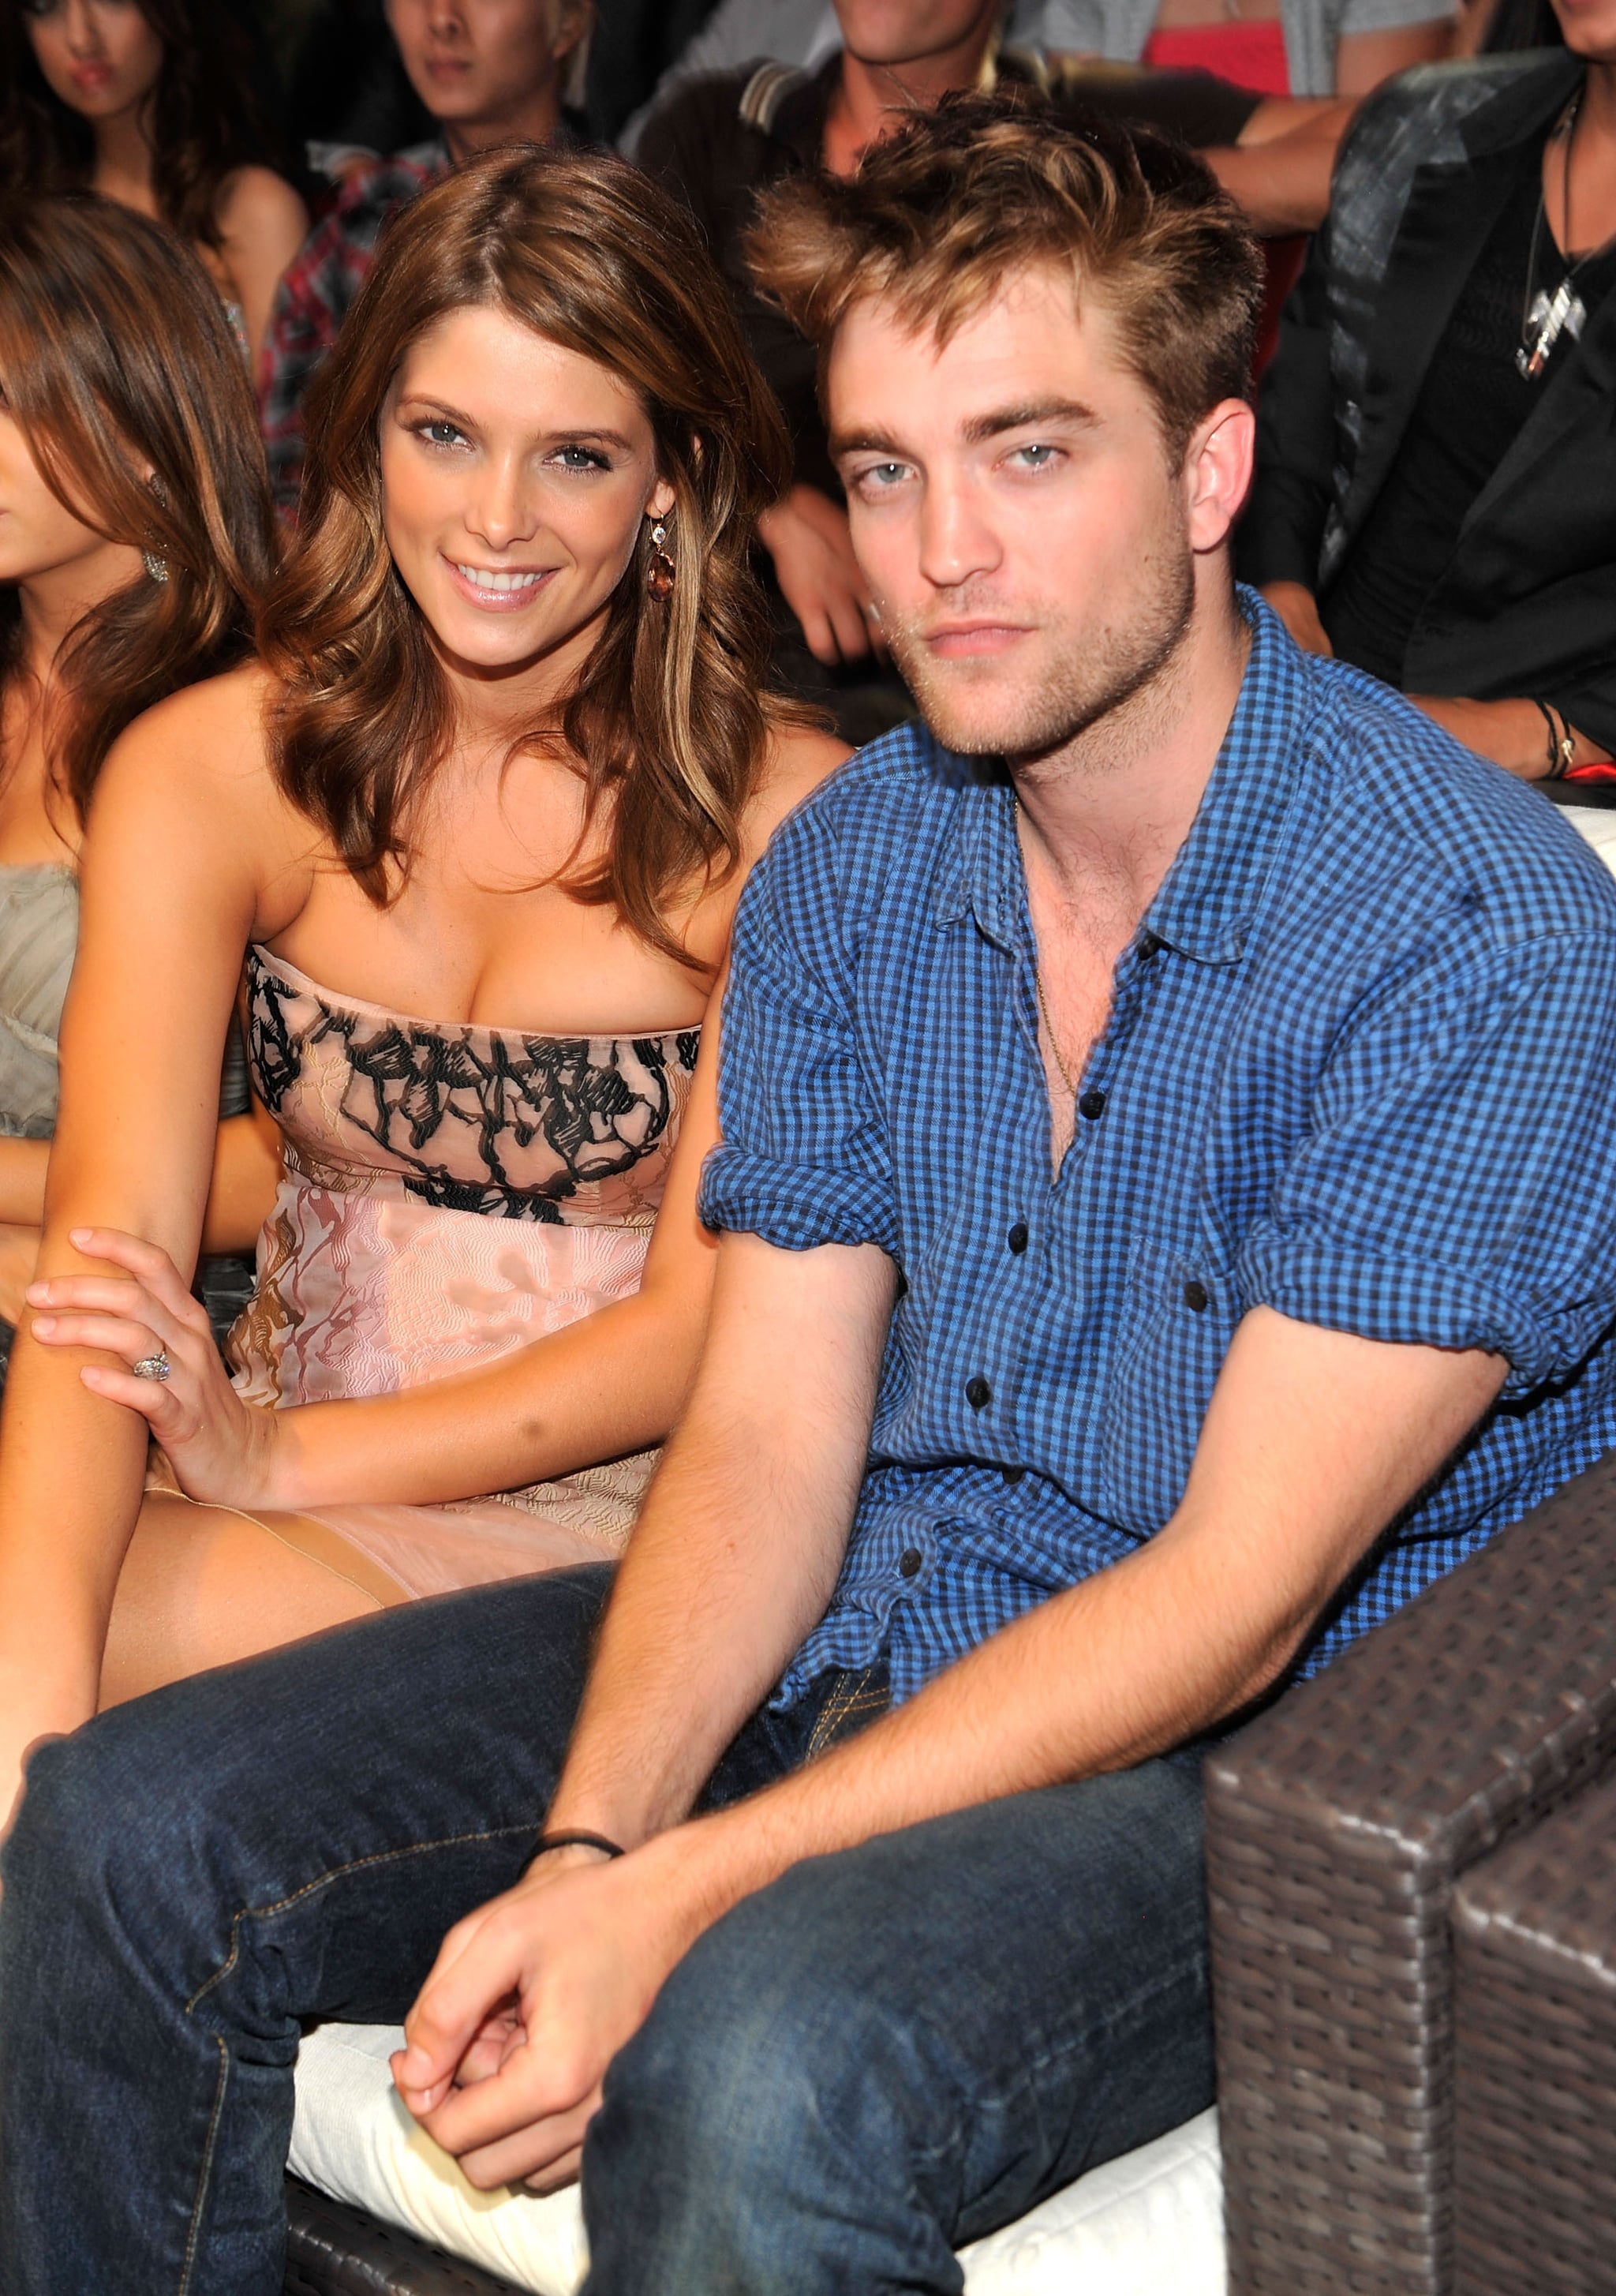 Robert pattinson whos dating